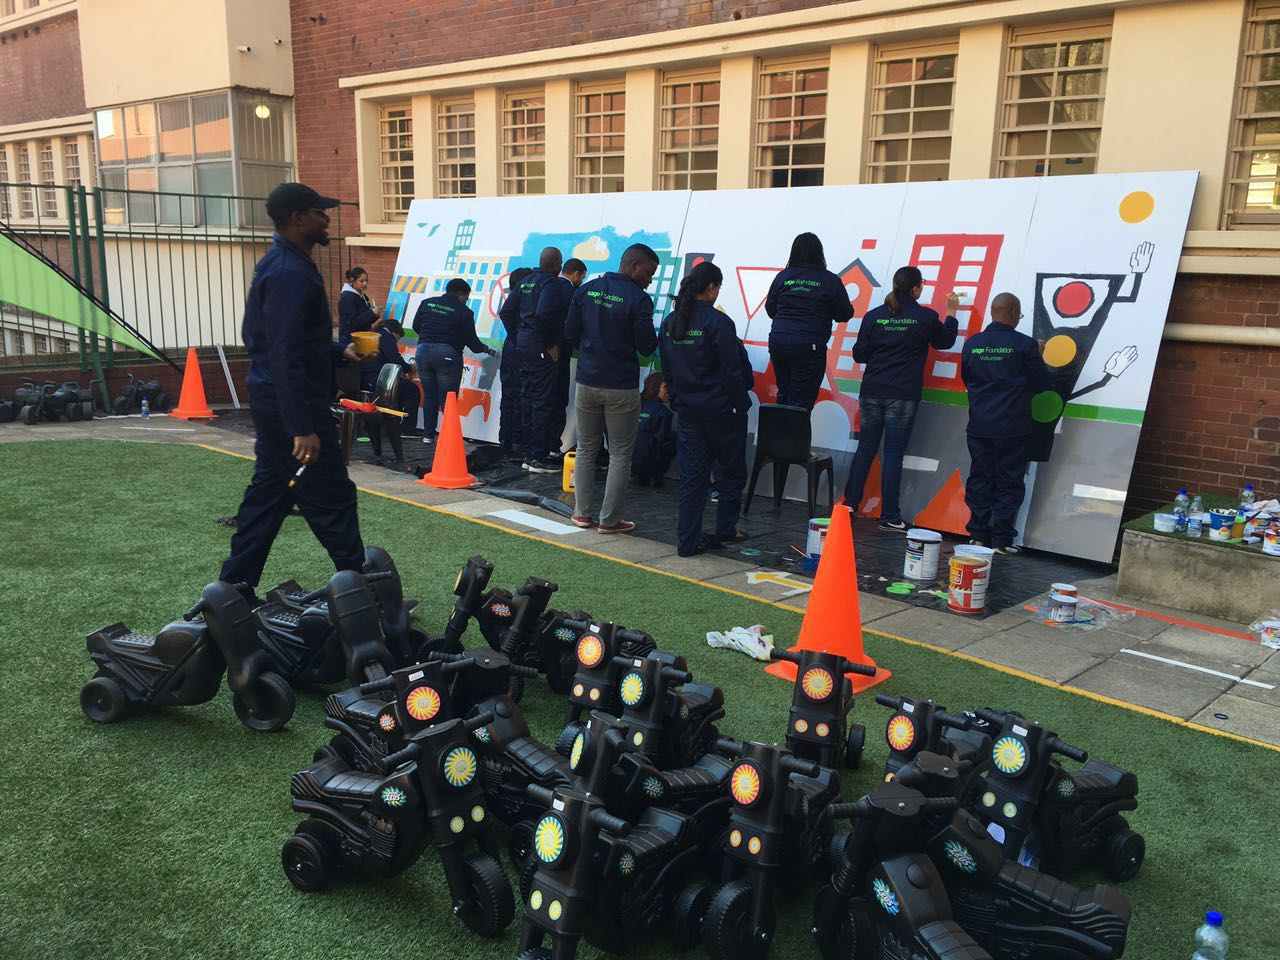 Teaching kids about road safety is crucial. Leaving a legacy is necessary. #SageFoundation #MandelaWeek https://t.co/ygBP45cMcJ